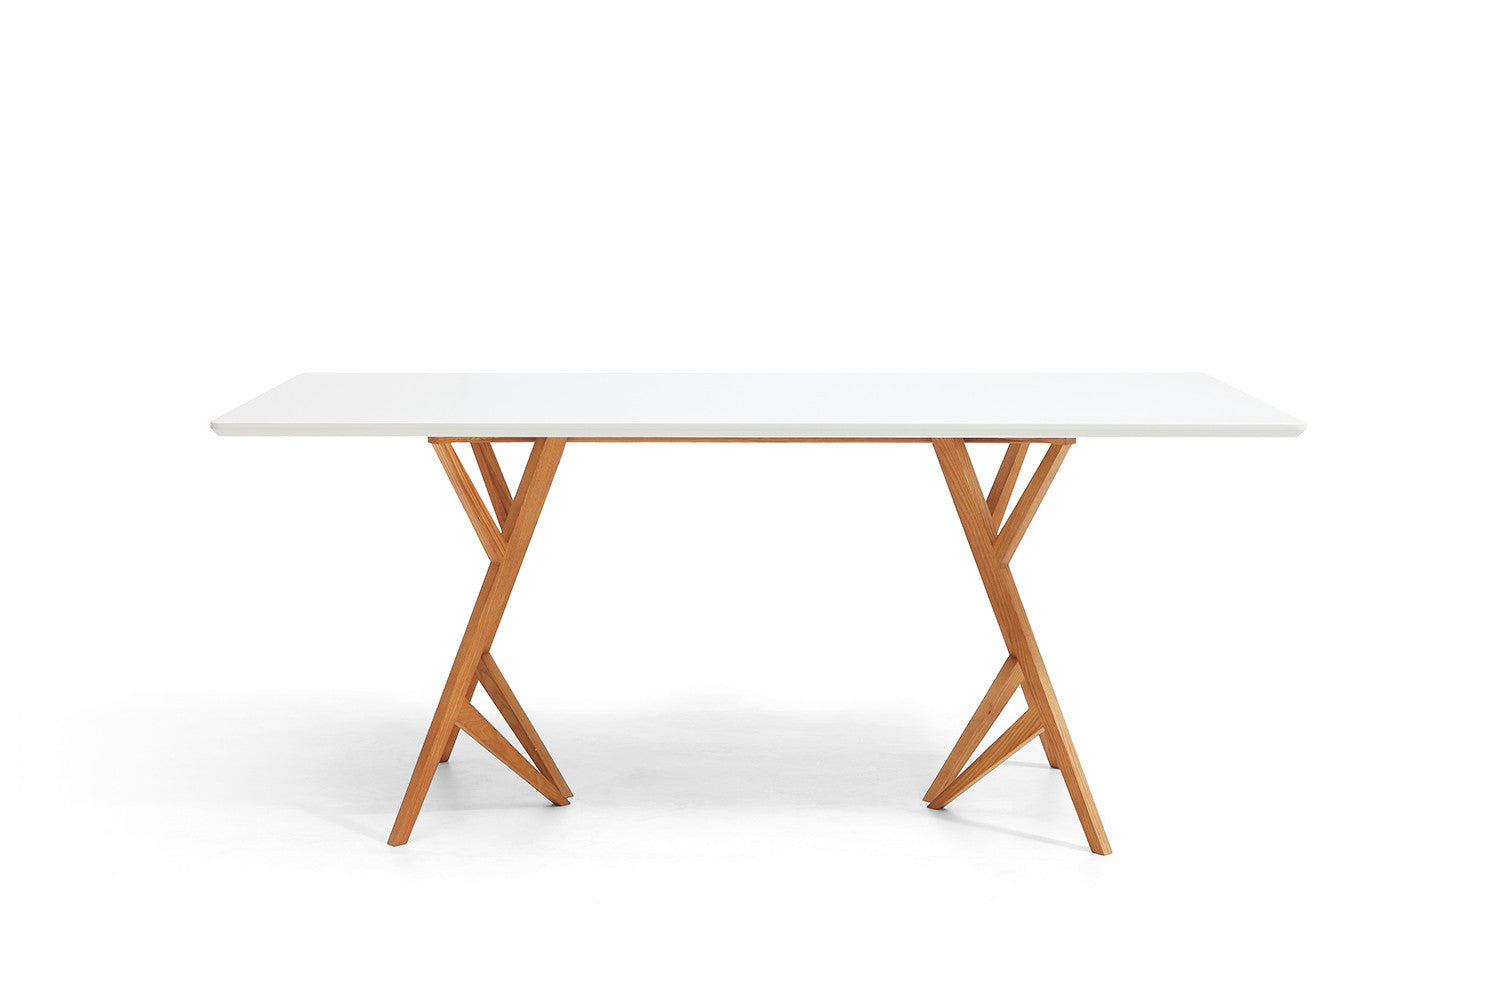 Table de salle manger design scandinave vispa dewarens - Tables a manger design ...